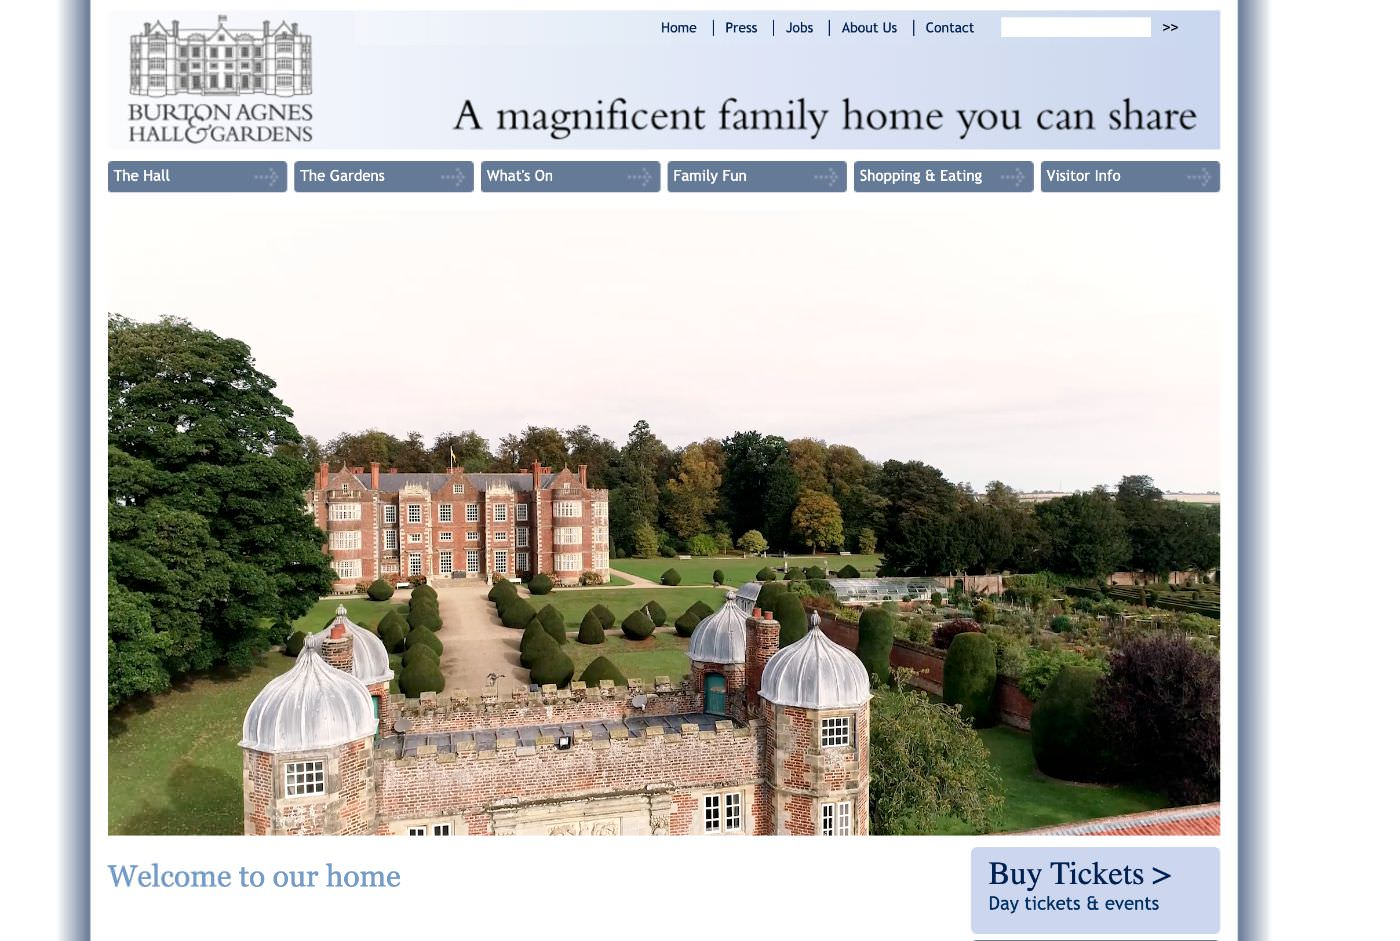 Burton agnes Hall wedding website homepage screenshot